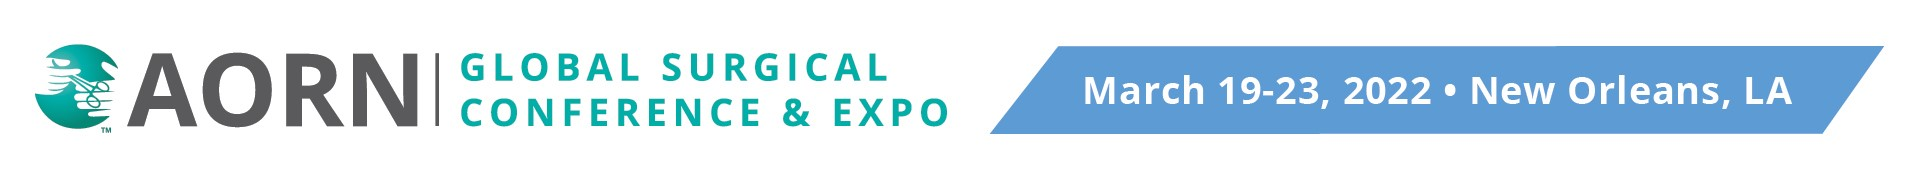 AORN Global Surgical Conference & Expo 2022 Event Banner